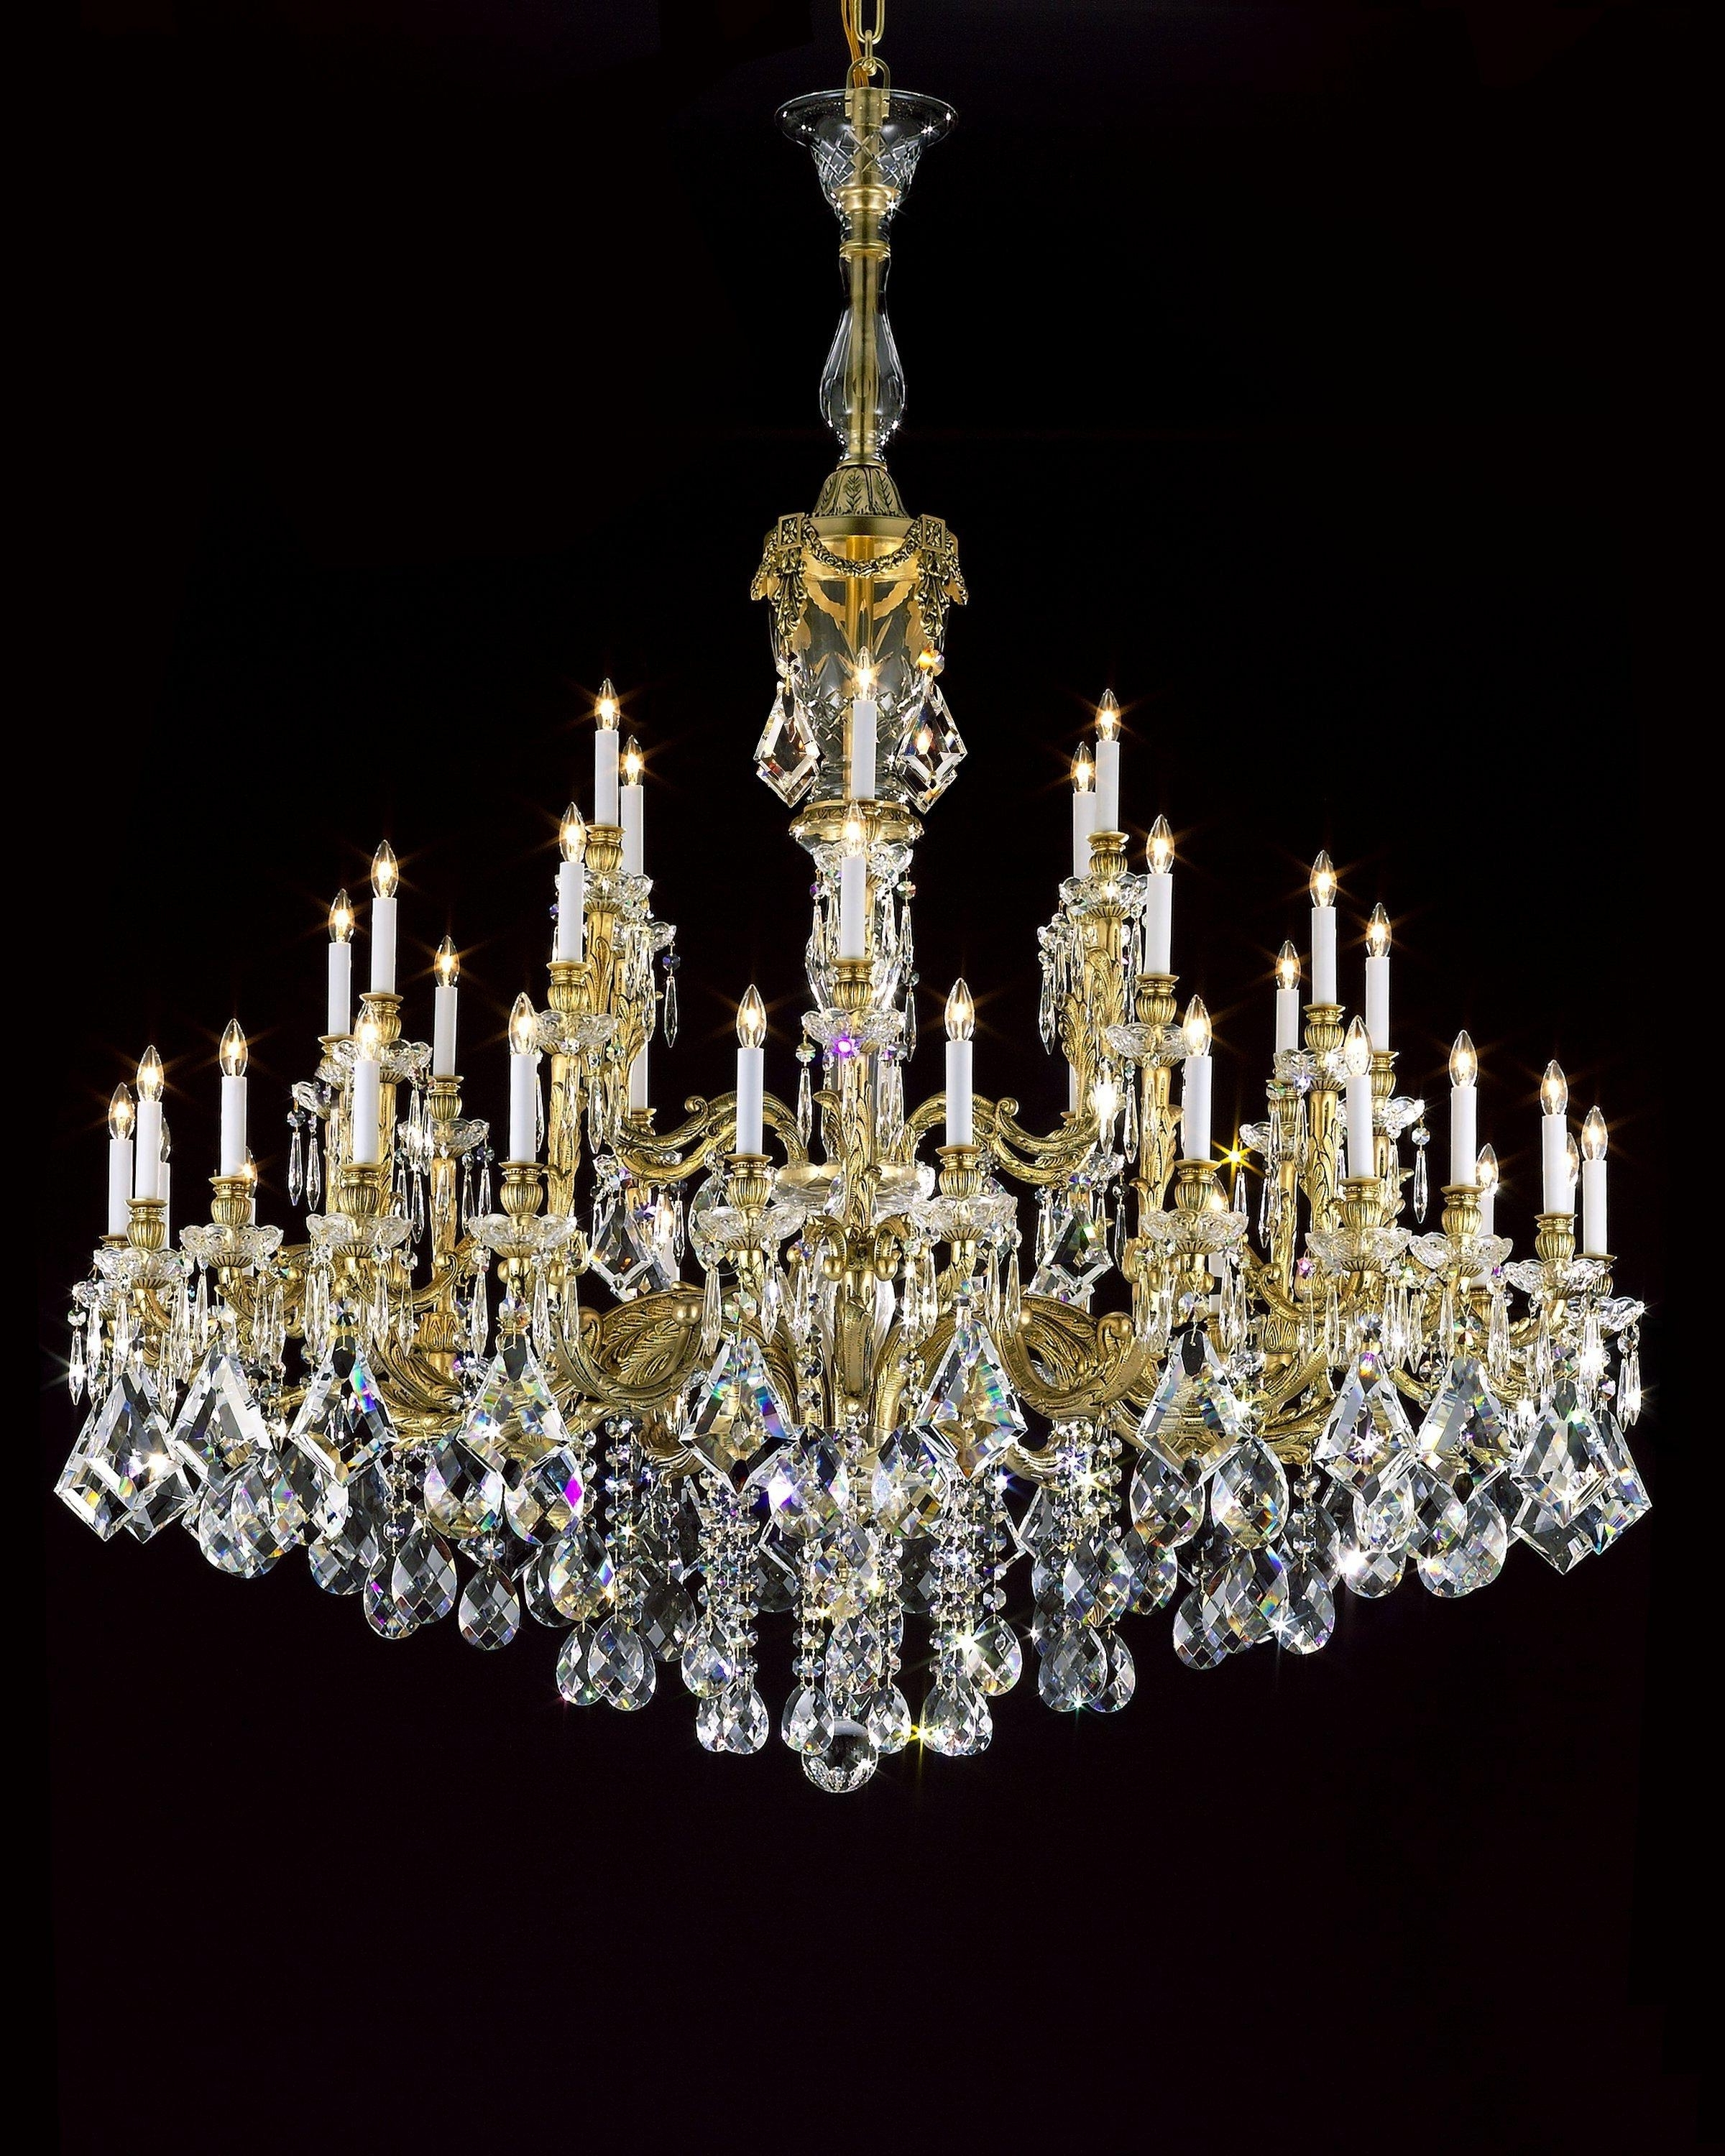 Traditional Chandeliers Regarding Widely Used Chandeliers : Traditional Chandeliers Inspirational Grand Chandelier (View 4 of 20)